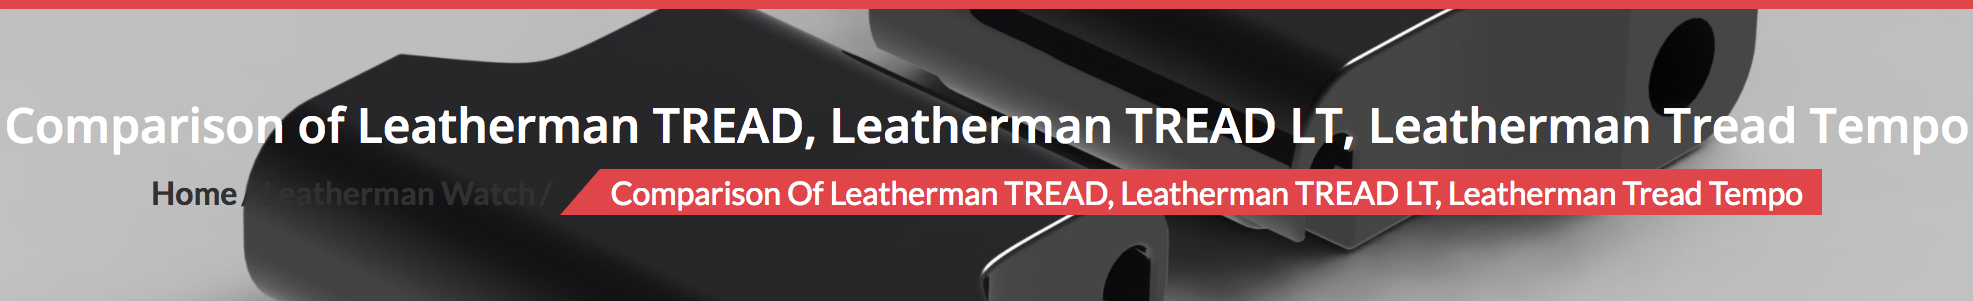 Full Review and comparison of Leatherman Tread, Tread LT, and Tread Tempo. ***Read it and choose wisely!***